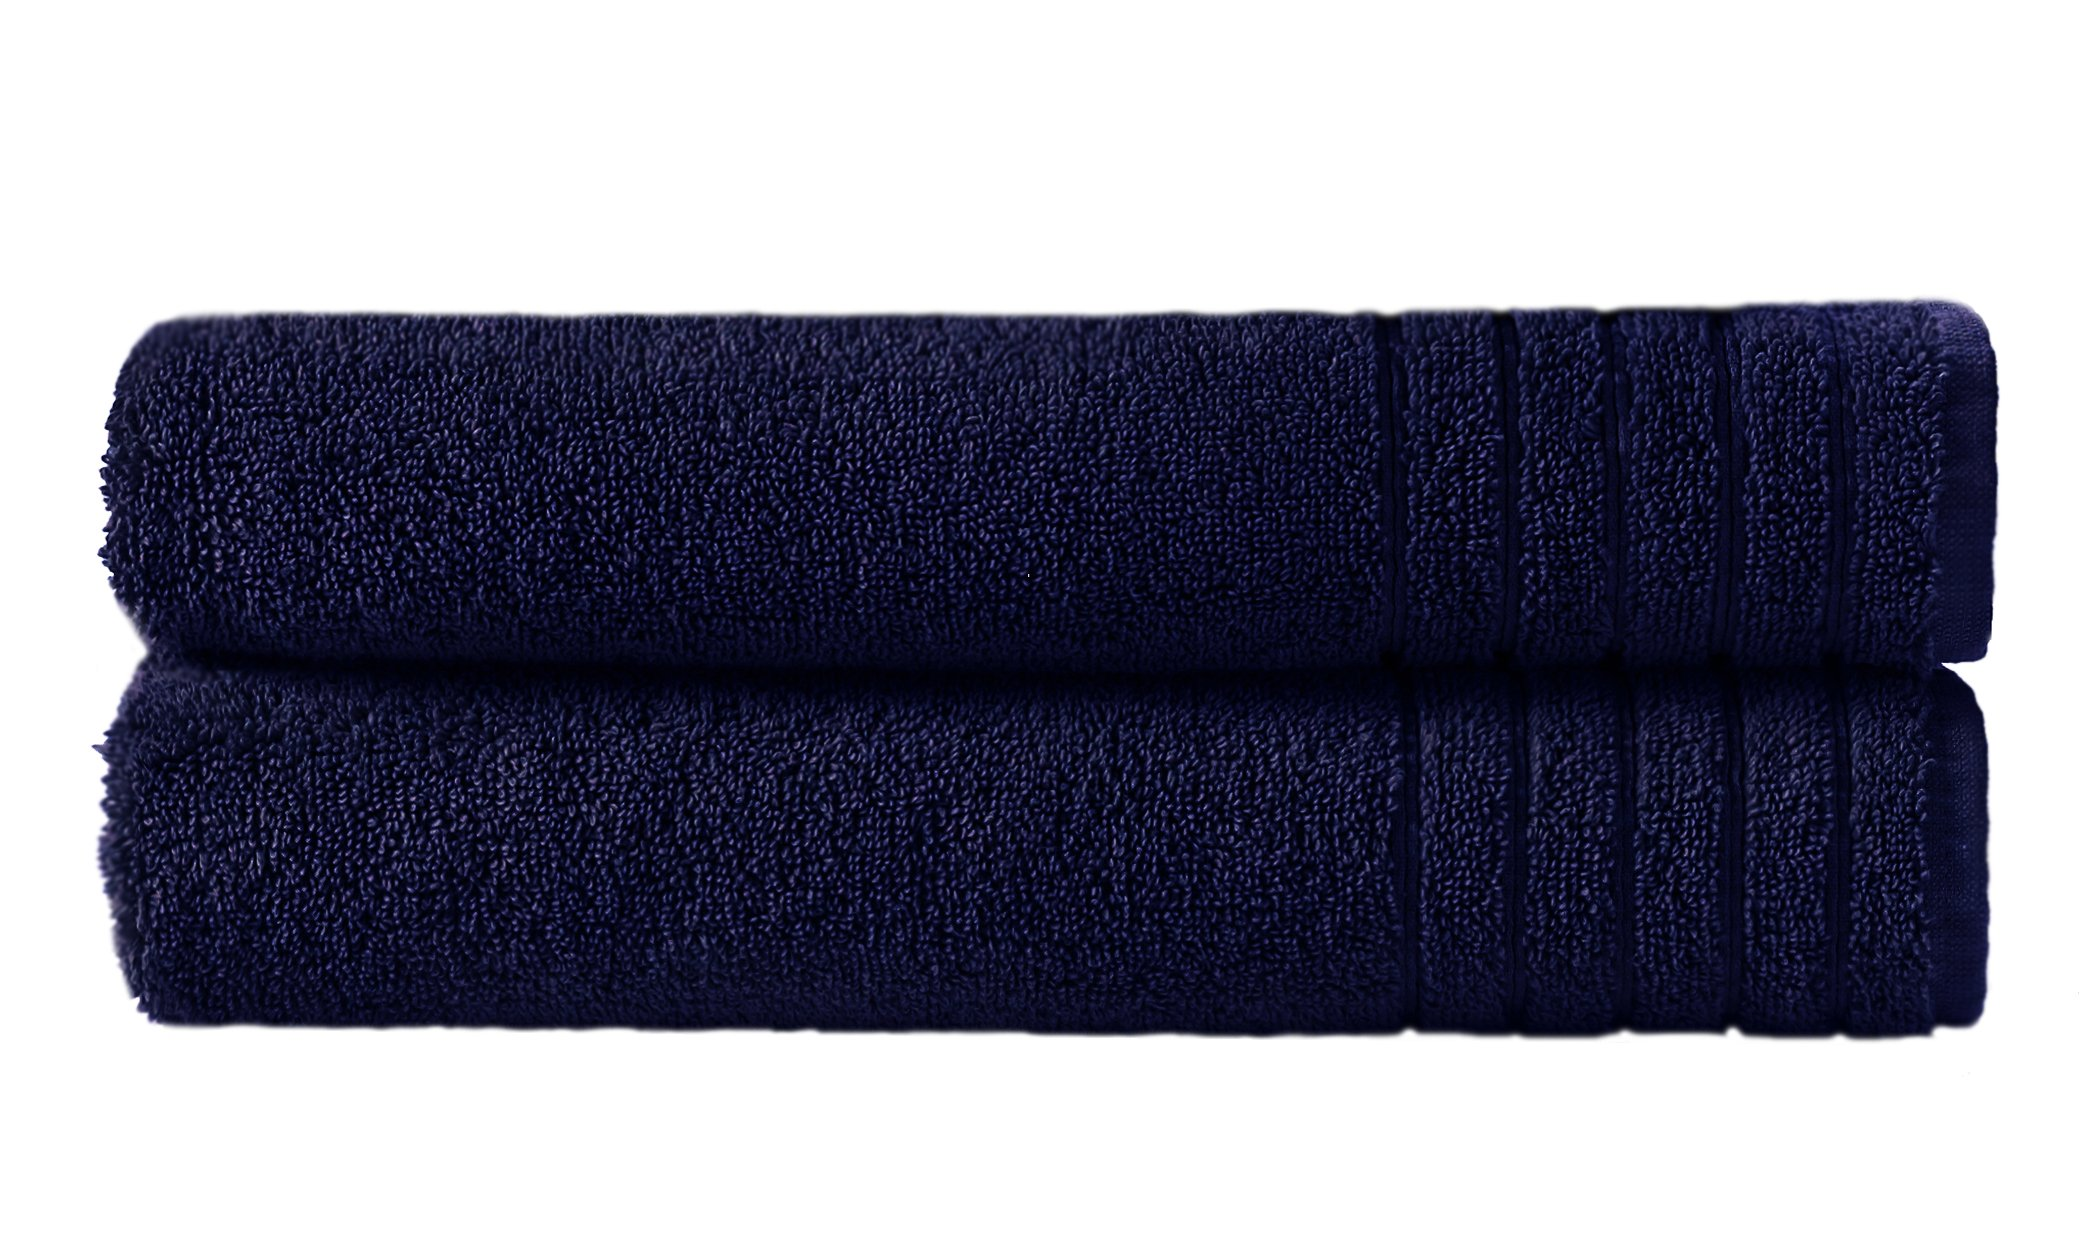 Cotton Craft - Super Zero Twist 2 Pack Oversized Bath Sheet Set 35x70 - Navy - 7 Star Hotel Collection Beyond Luxury Softer Than A Cloud - 100% Pure Super Zero Twist Cotton